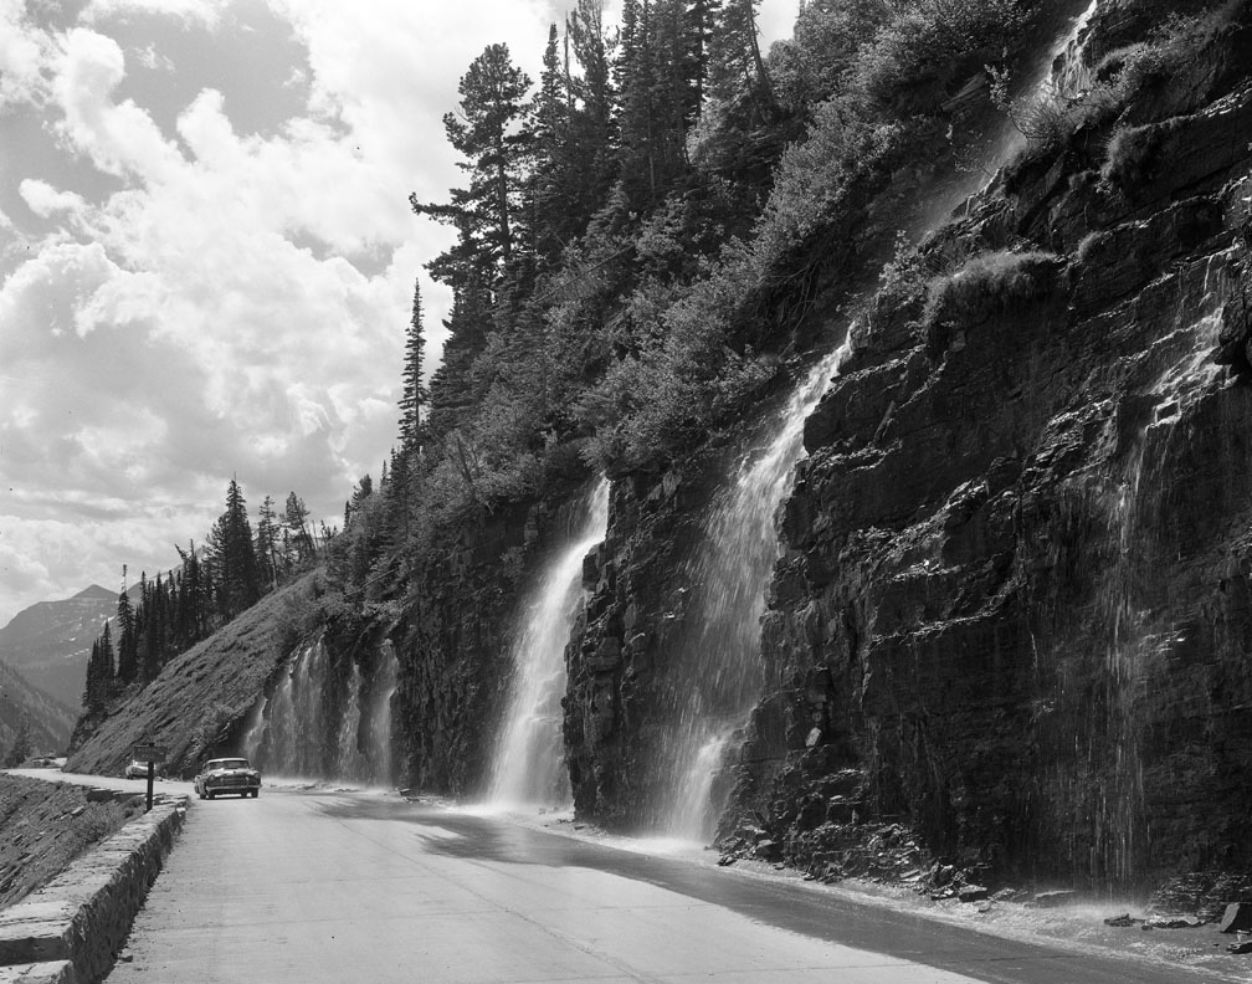 Weeping Wall, Going-to-the-Sun Highway, Glacier National Park, Montana